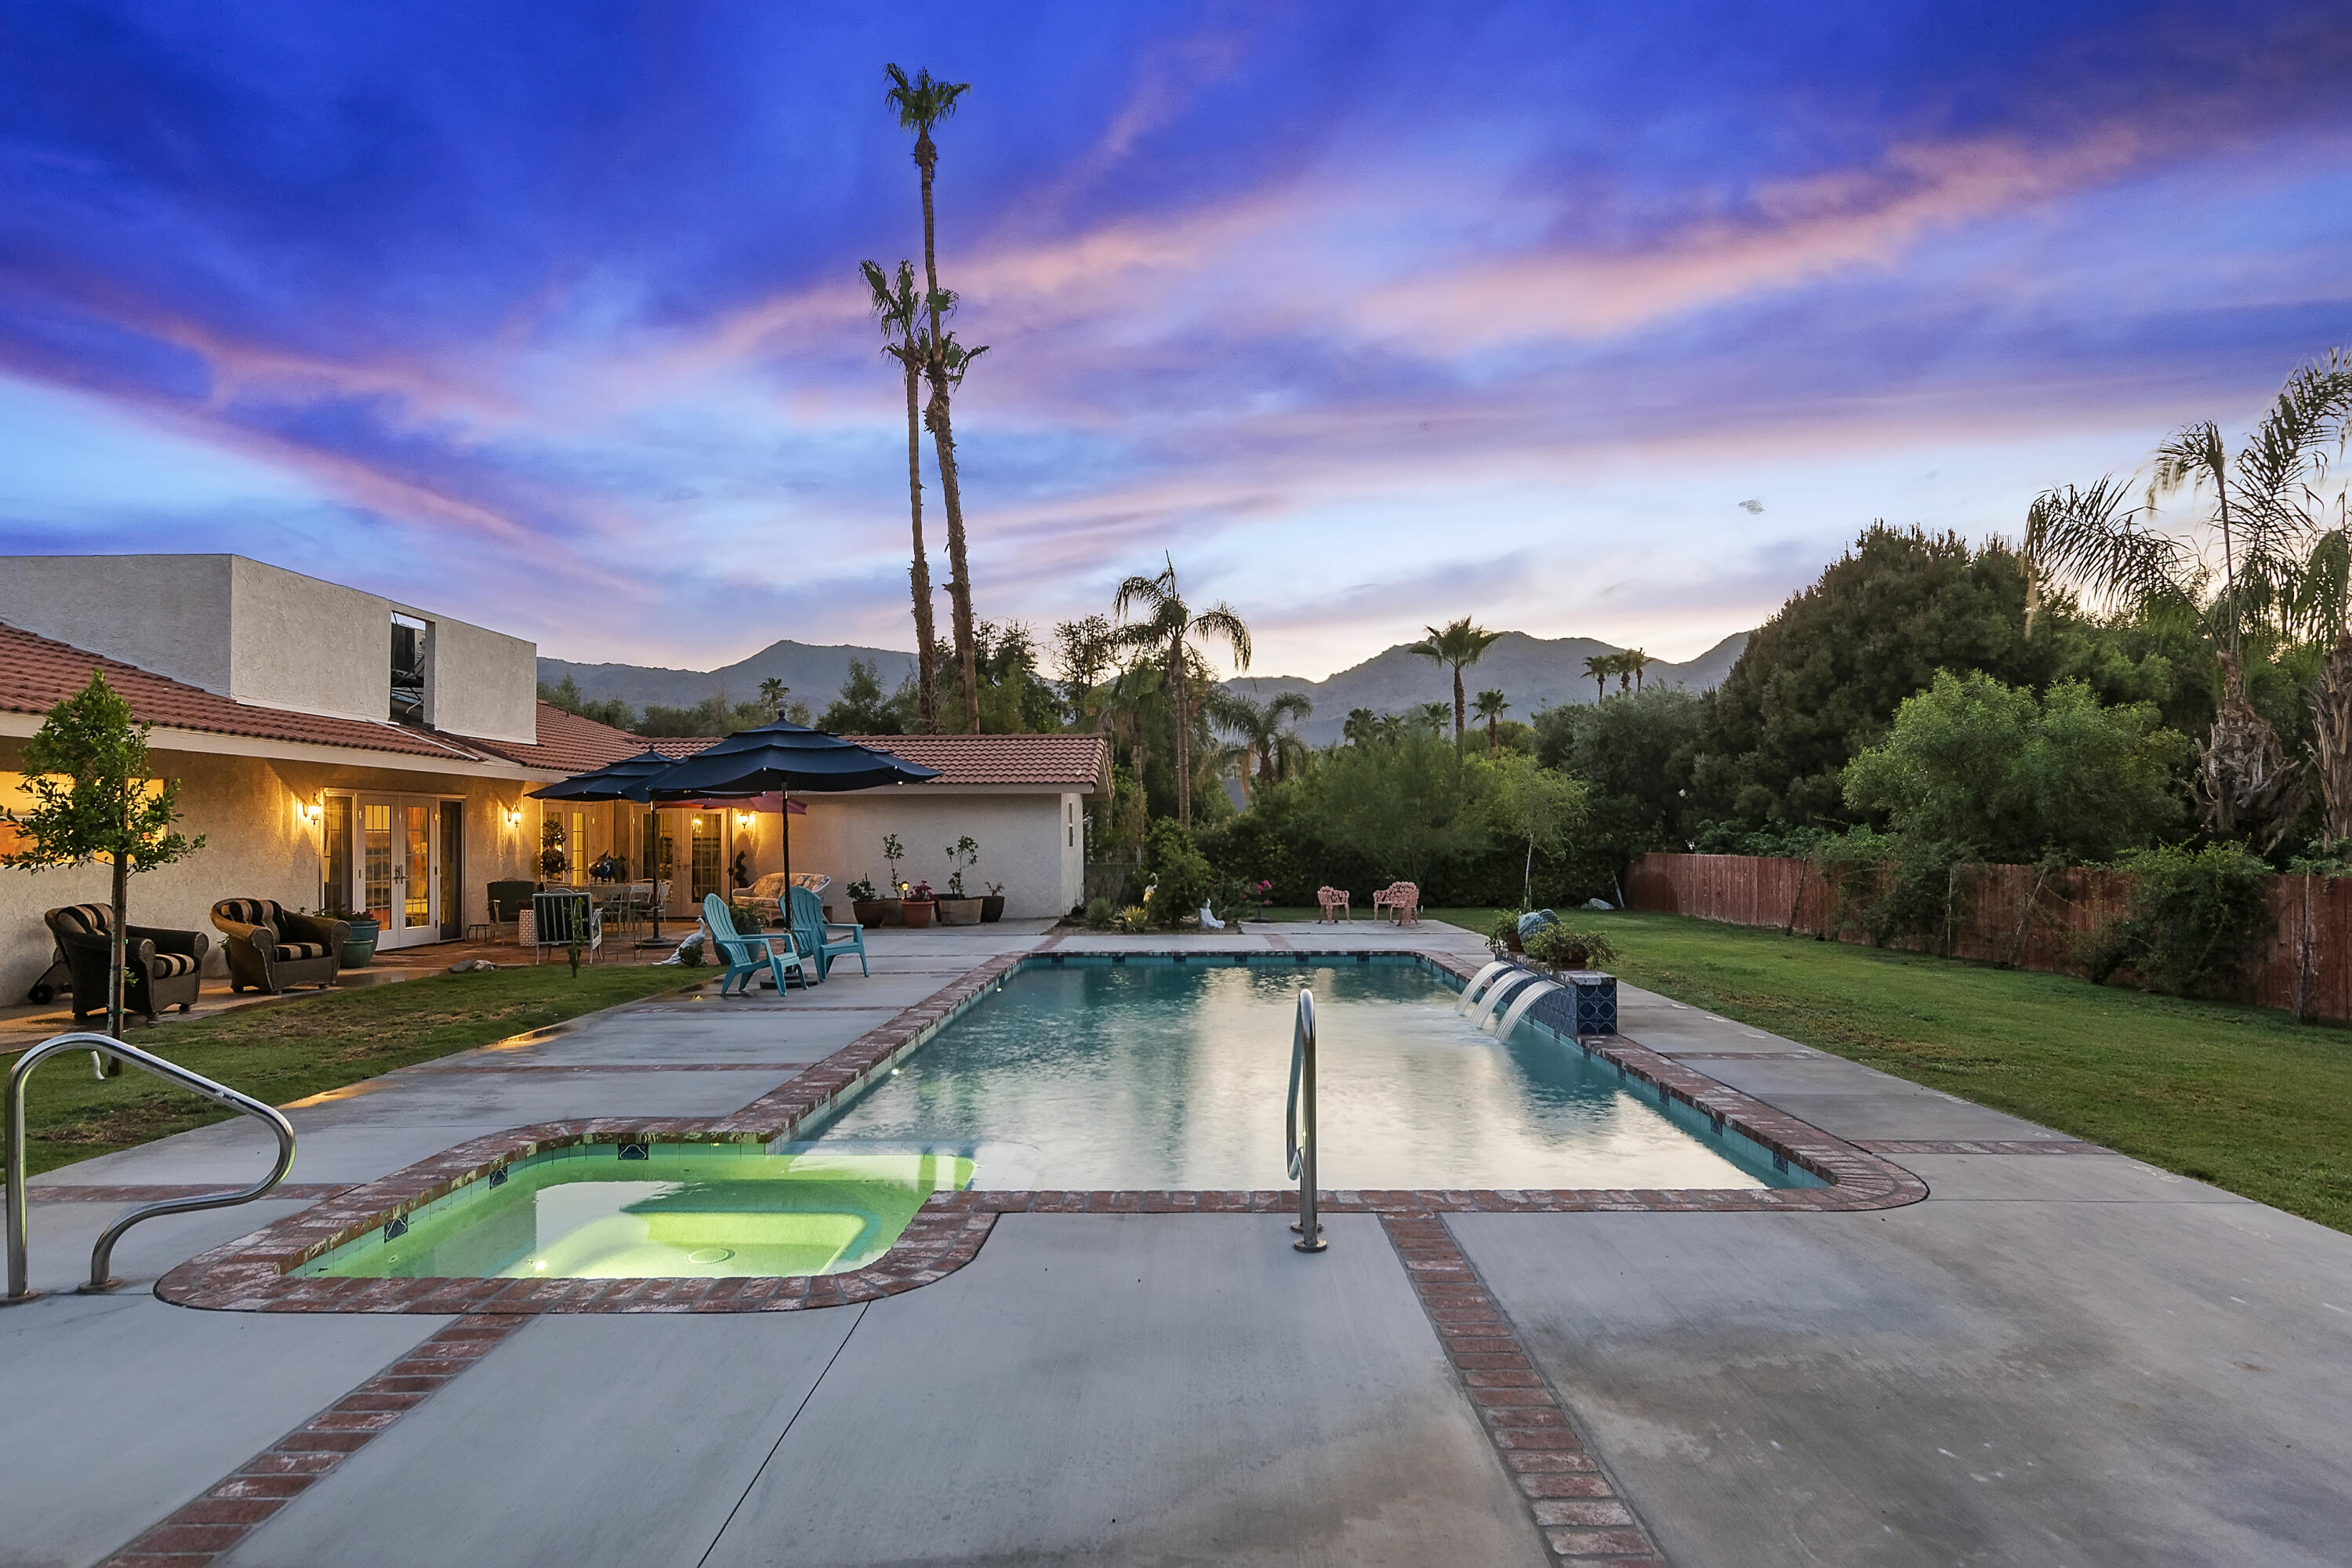 VIEWS,Views, Views! This charmer has been redone top to bottom. Archway, flooring, new drywall & plaster, new doors and most windows.  The artist/owner has created an indoor/outdoor lifestyle paradise.  French gardens, totally remodeled pool & spa, gourmet dining, office/studio and plenty of room for expansion should you prefer a free standing casita or art studio.  There is abundant storage inside and out. 3 car garage and one of the finest, peaceful neighborhoods in South Palm Desert.. No expense was spared to create this 'Shangri La'.